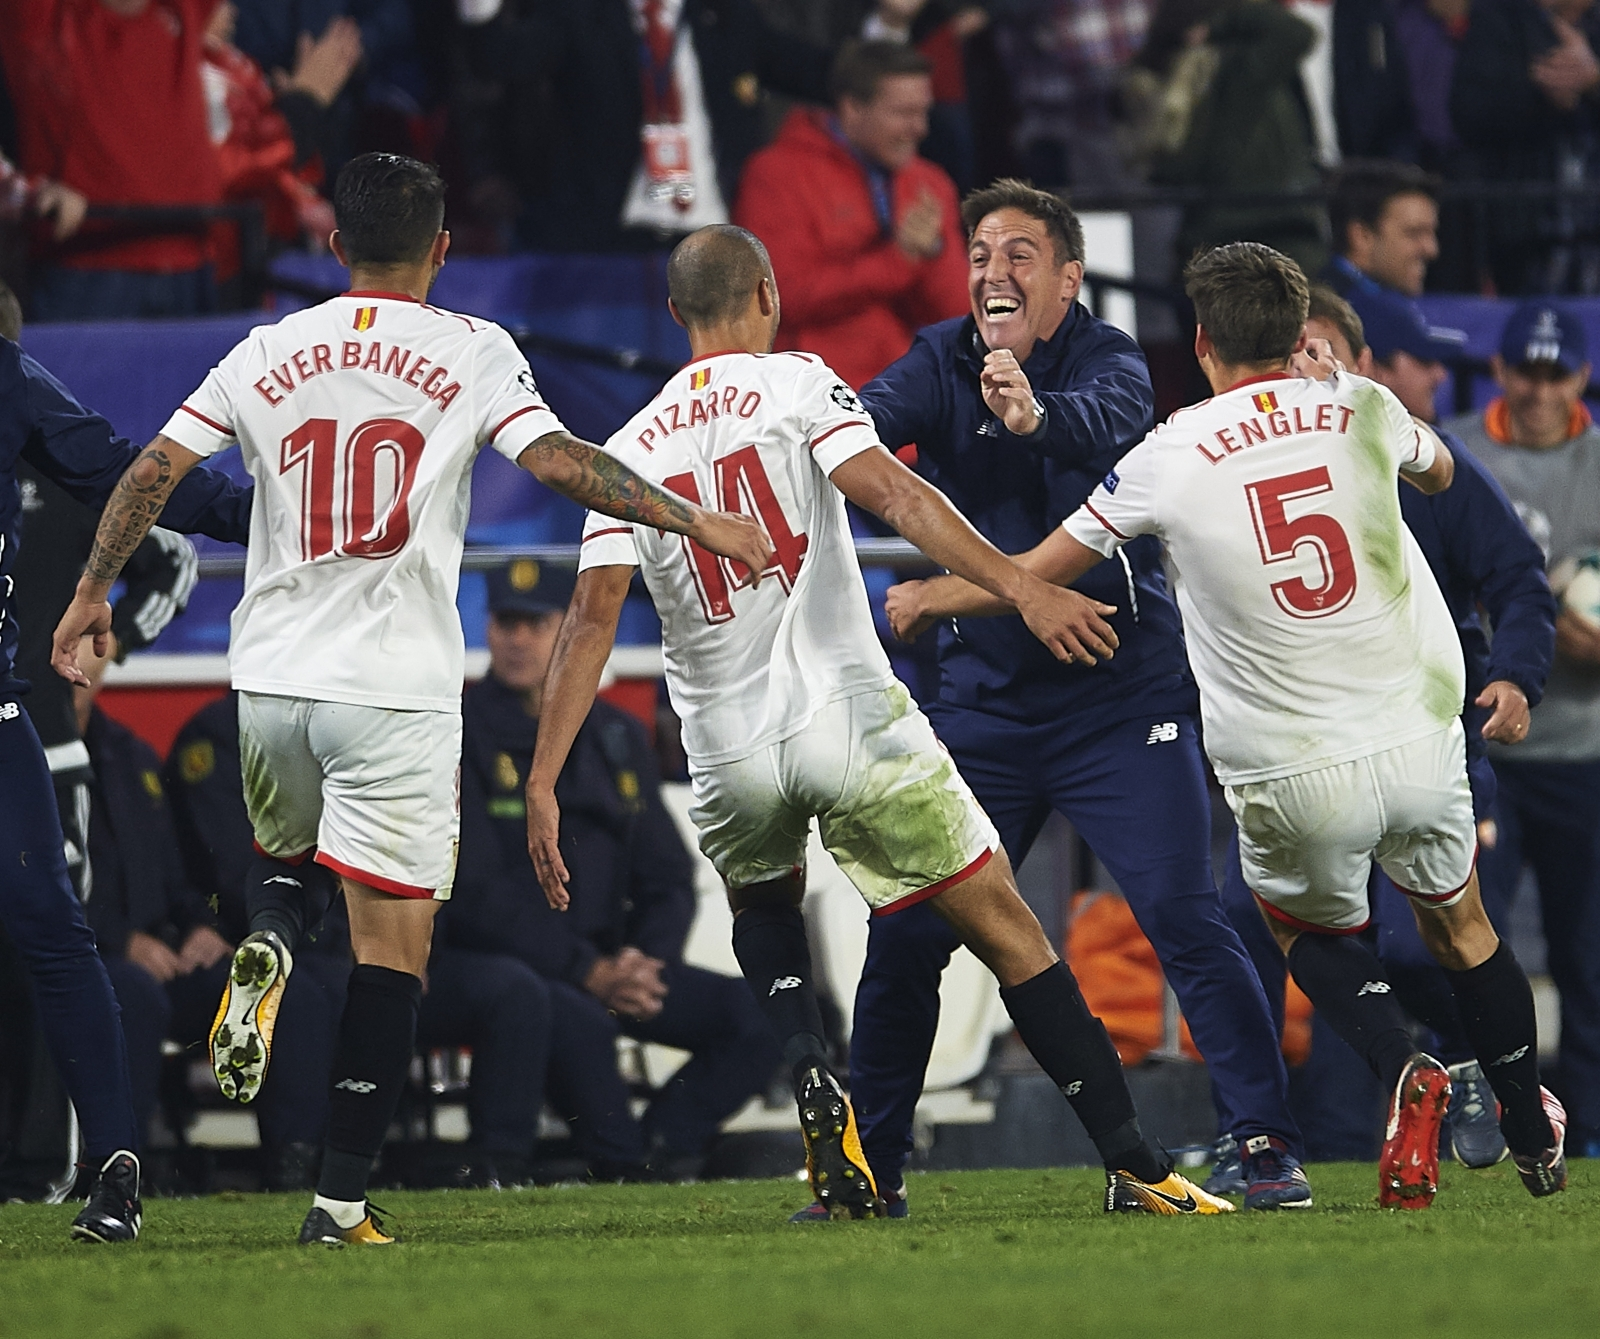 Sevilla's Eduardo Berizzo Told Players He Had Cancer at Half-Time vs. Liverpool